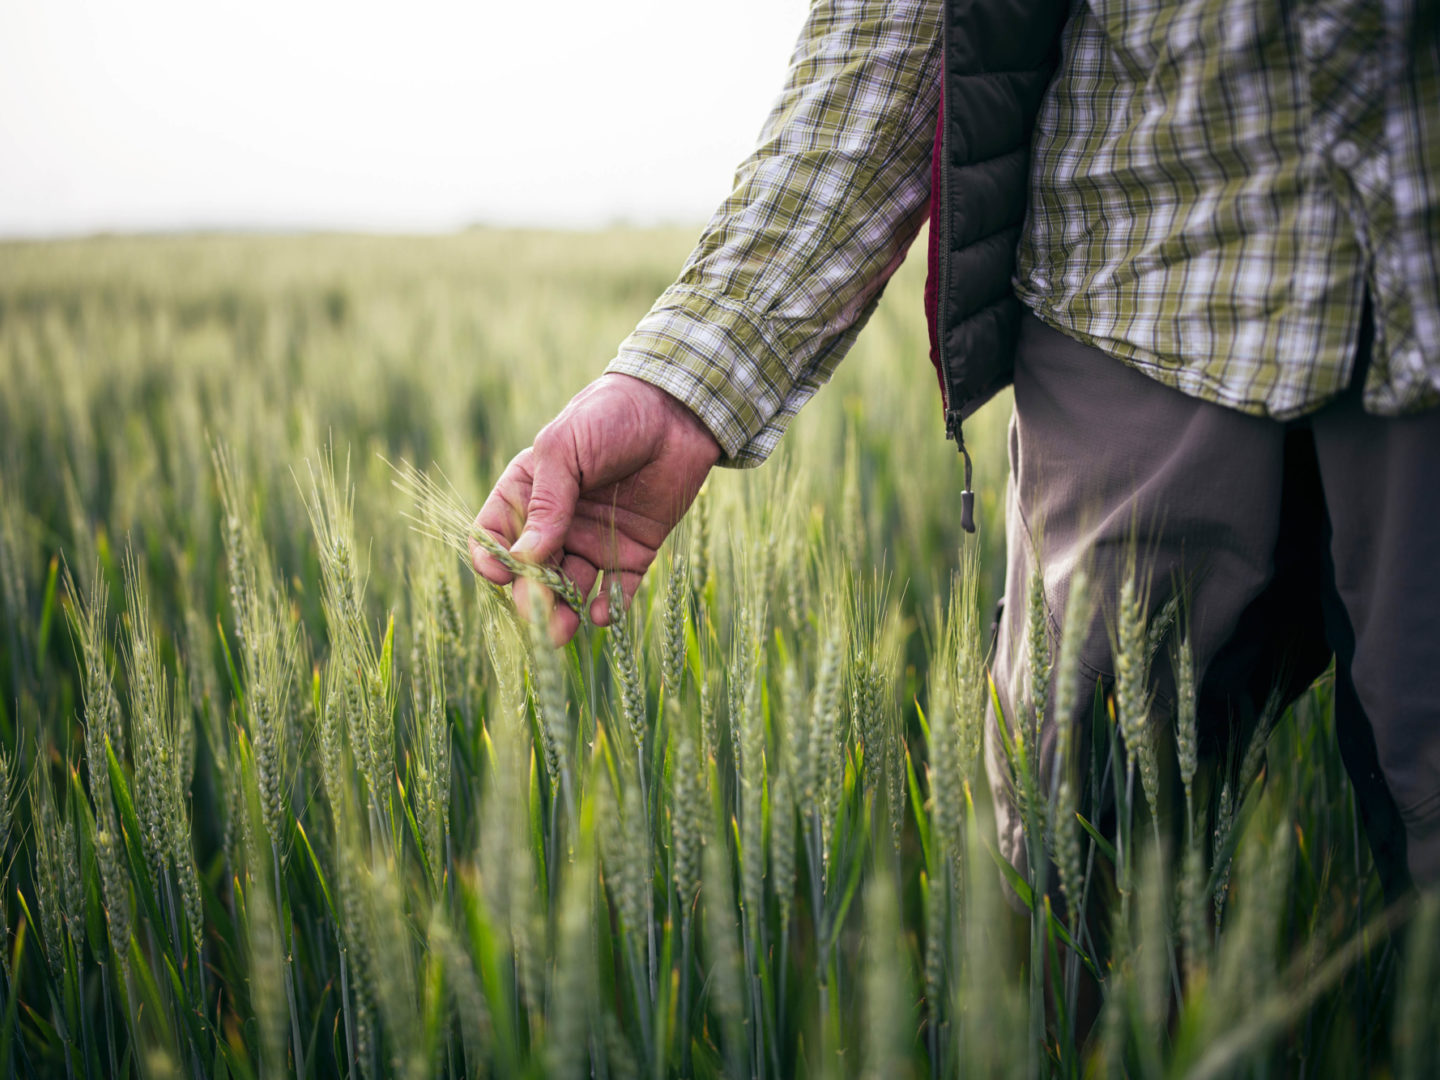 Man inspecting wheat in field